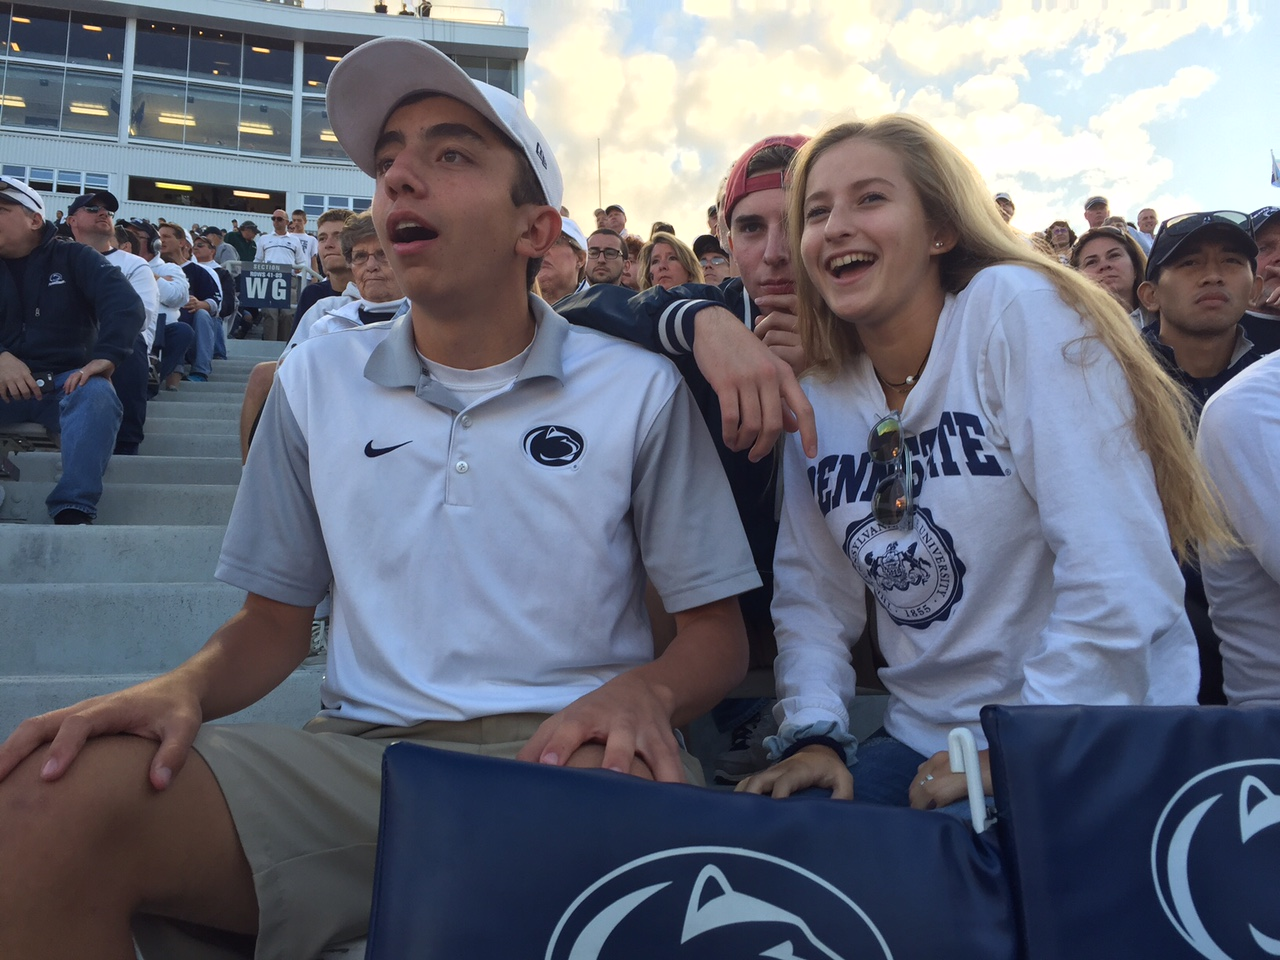 "On Saturday, September 9th, Penn State faced off with Pitt at Beaver Stadium.""Penn State football has helped me be a part of a college environment from a young age. While other kids can't wait until college, I feel like I'm already in it,"" Ryan Battista, junior, said. The Nittany Lions routed the Panthers 33-14, to get revenge from the 2016 loss in Pittsburgh."